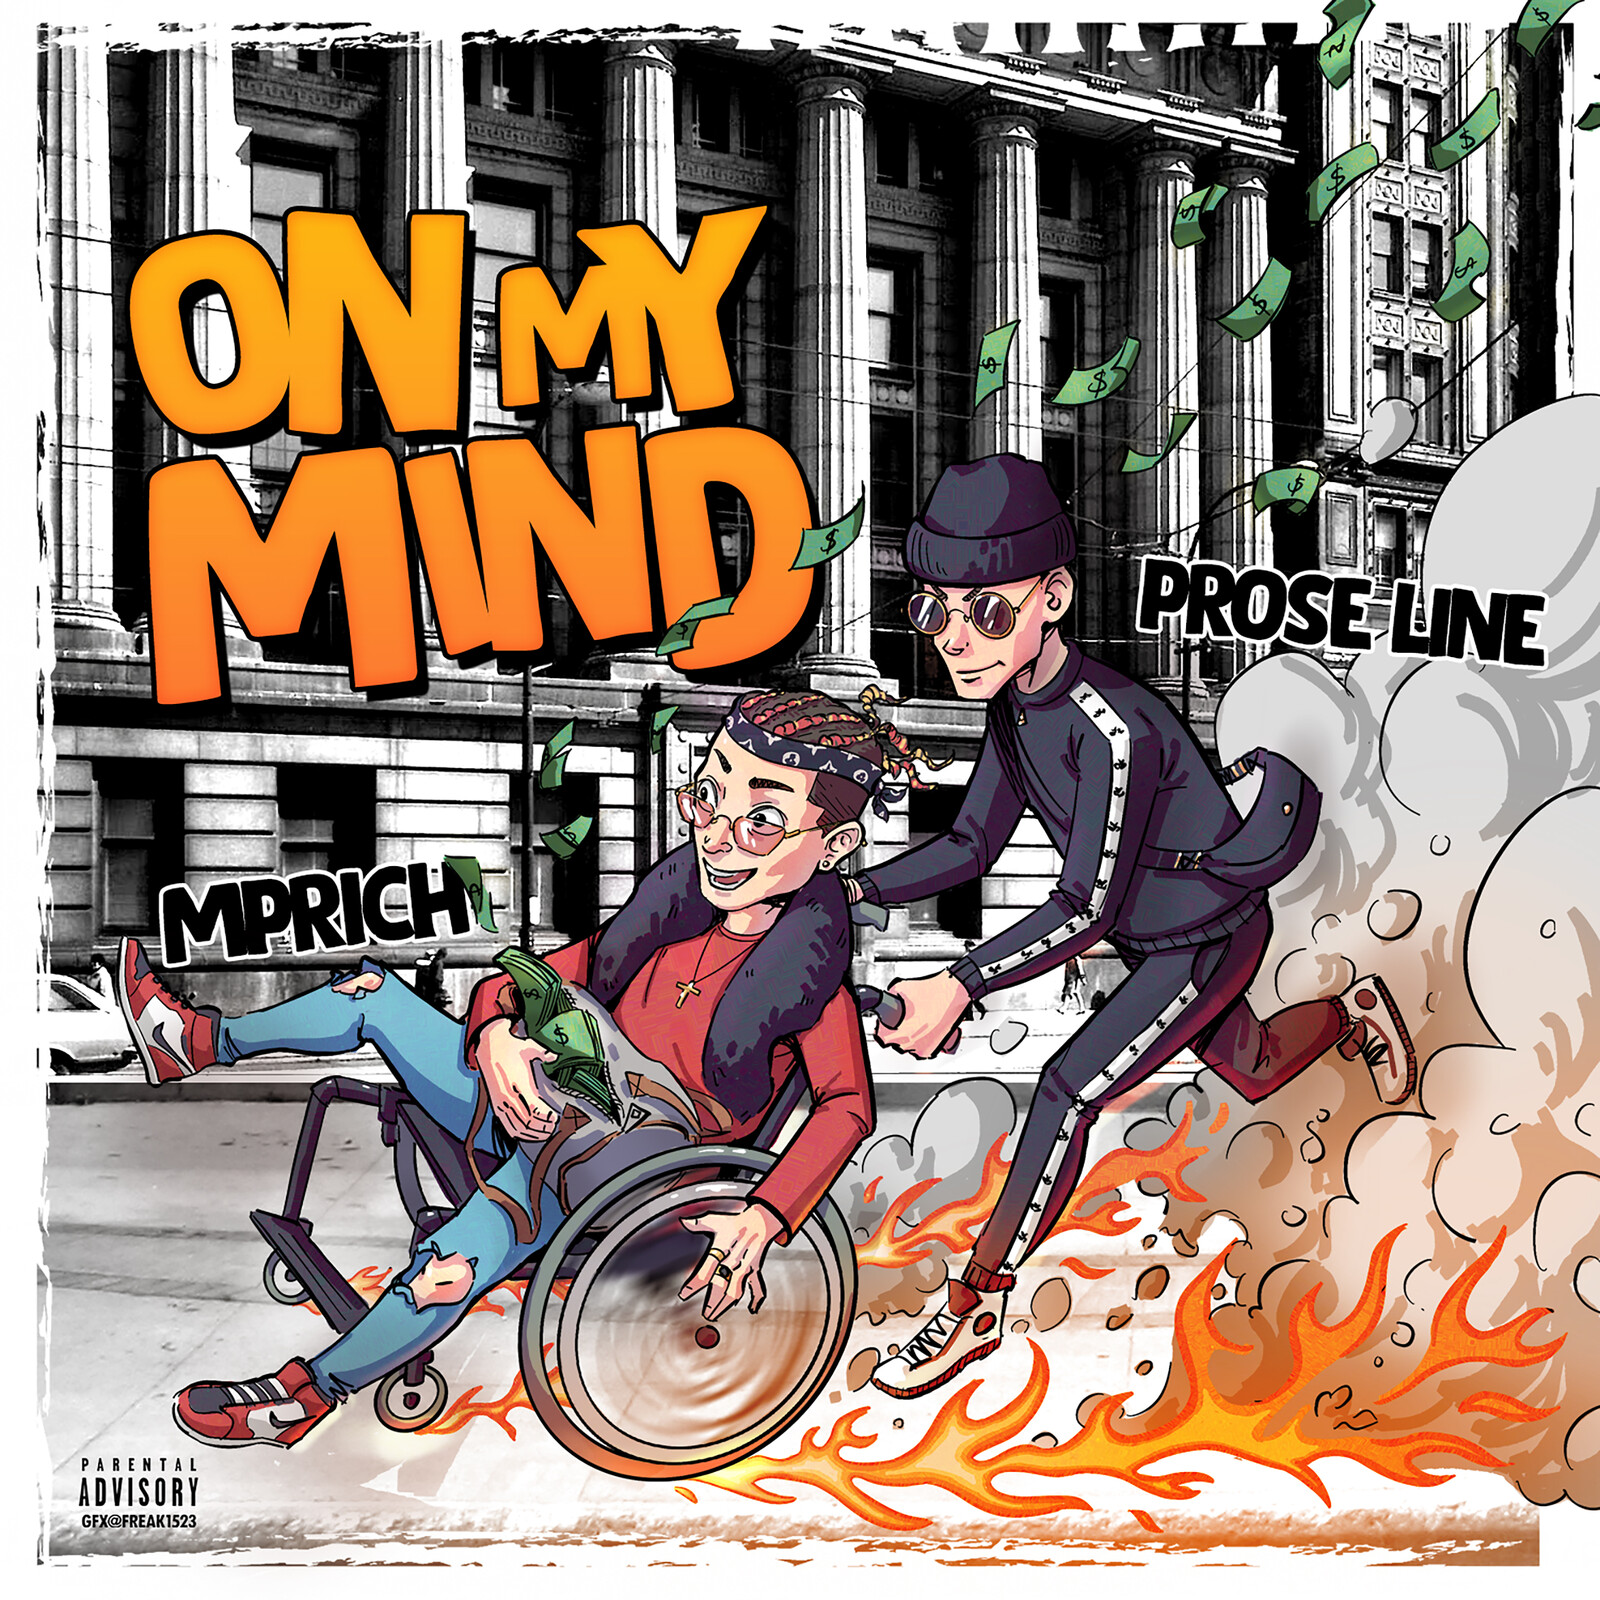 Album Cover collaboration -  On My Mind by PRØSE LINE feat MPRICH